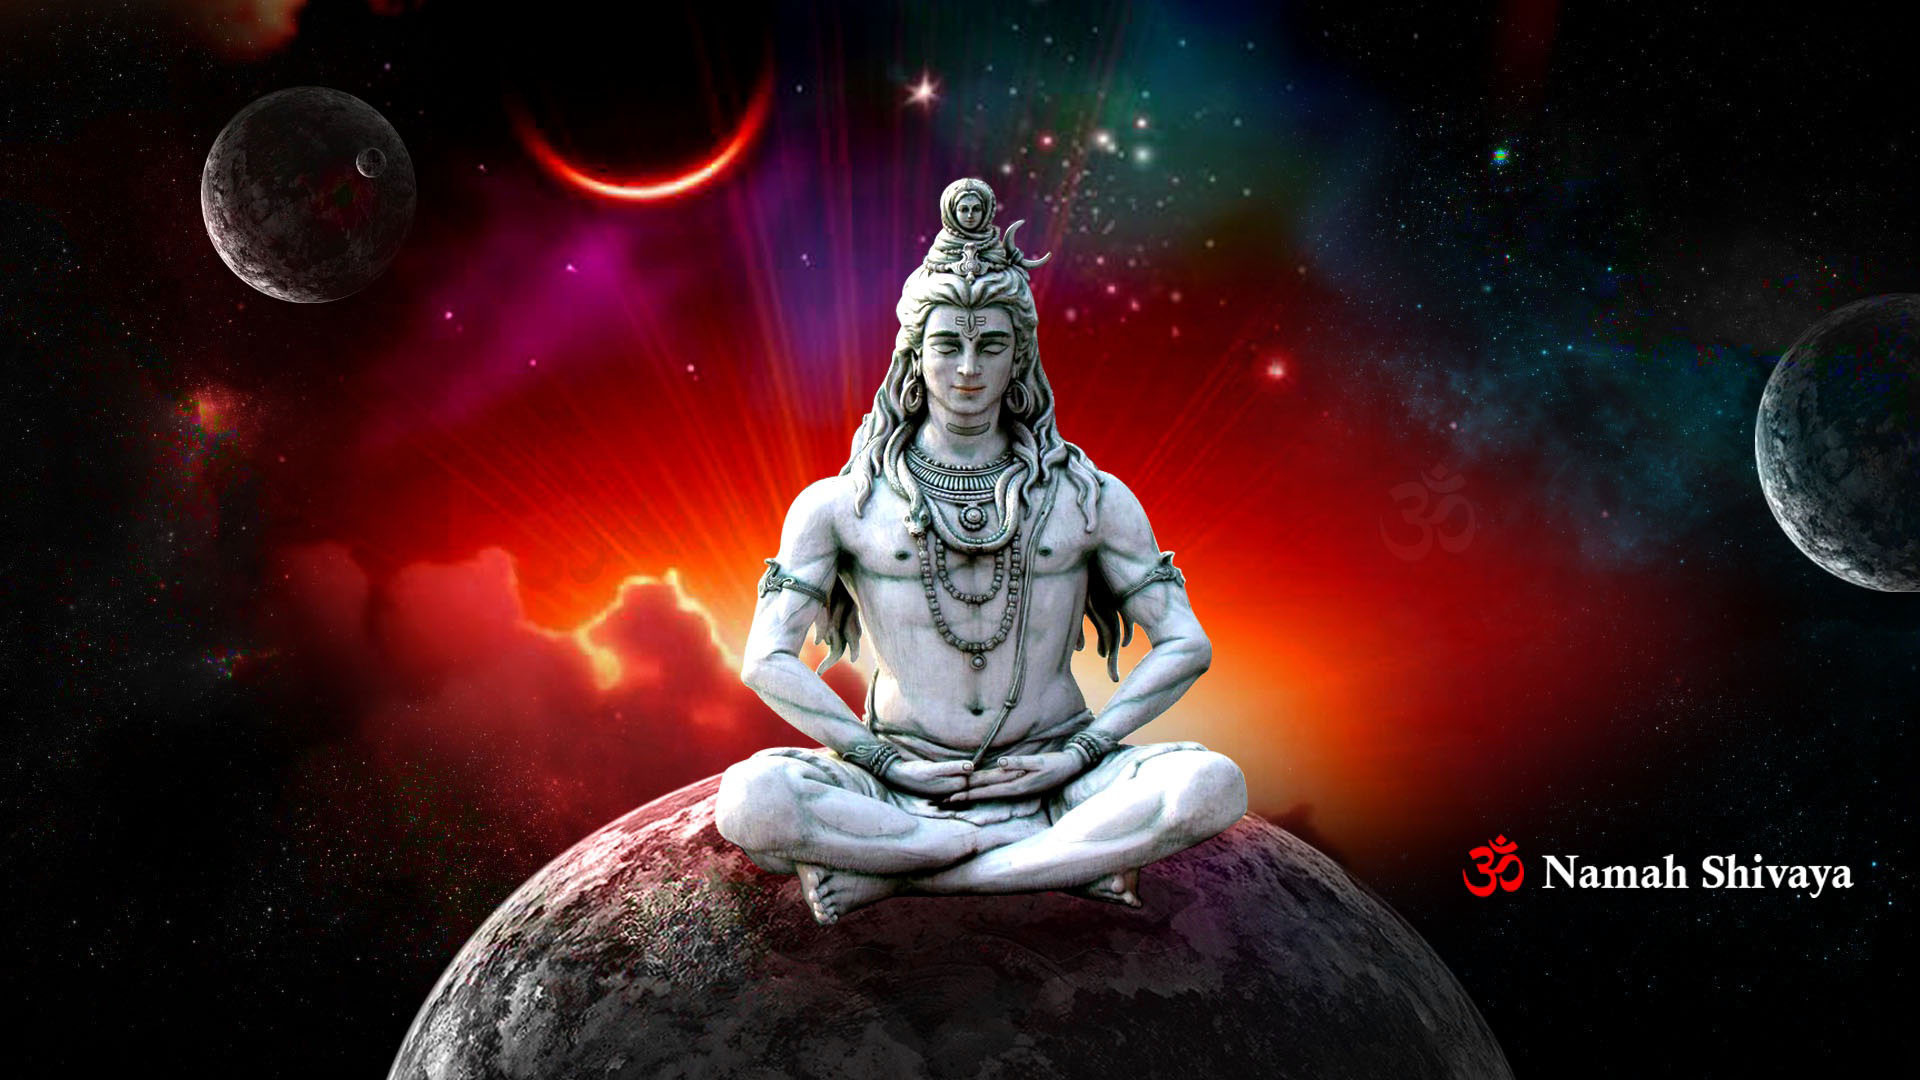 Lord shiva wallpapers 53 pictures - New lord shiva wallpapers ...